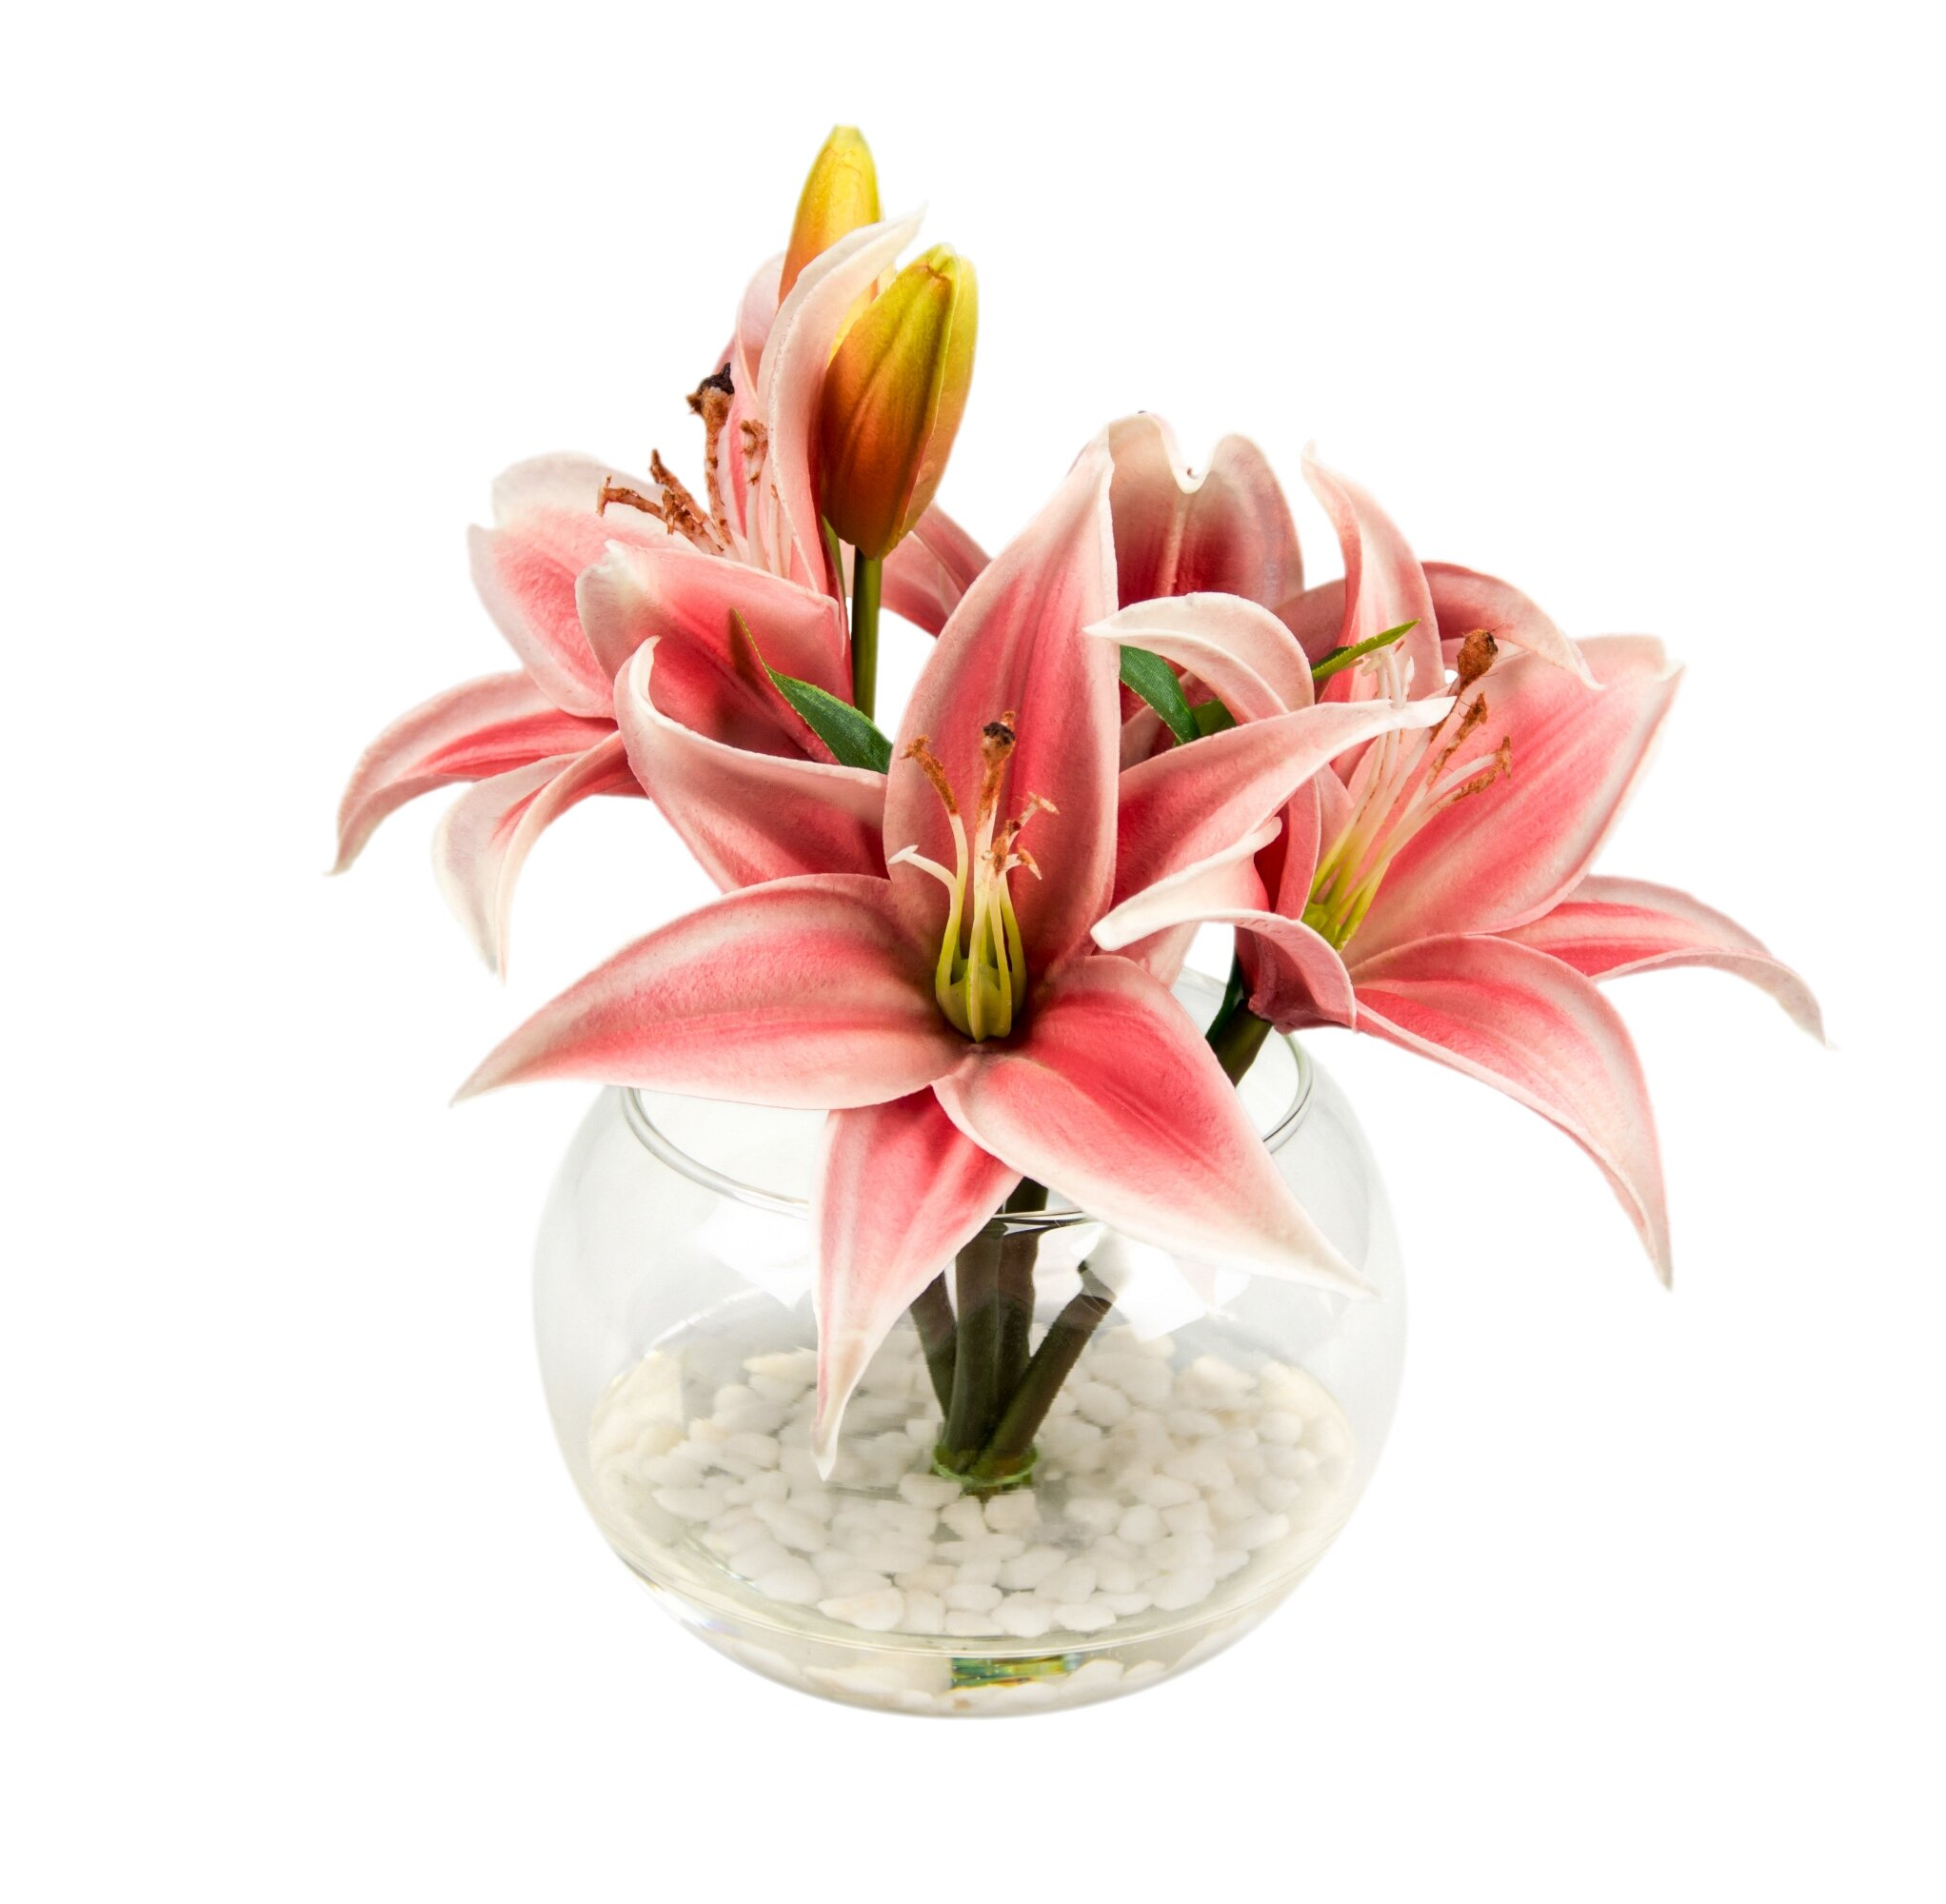 Charlton Home Blooms And Buds Lilies Floral Arrangement In Vase